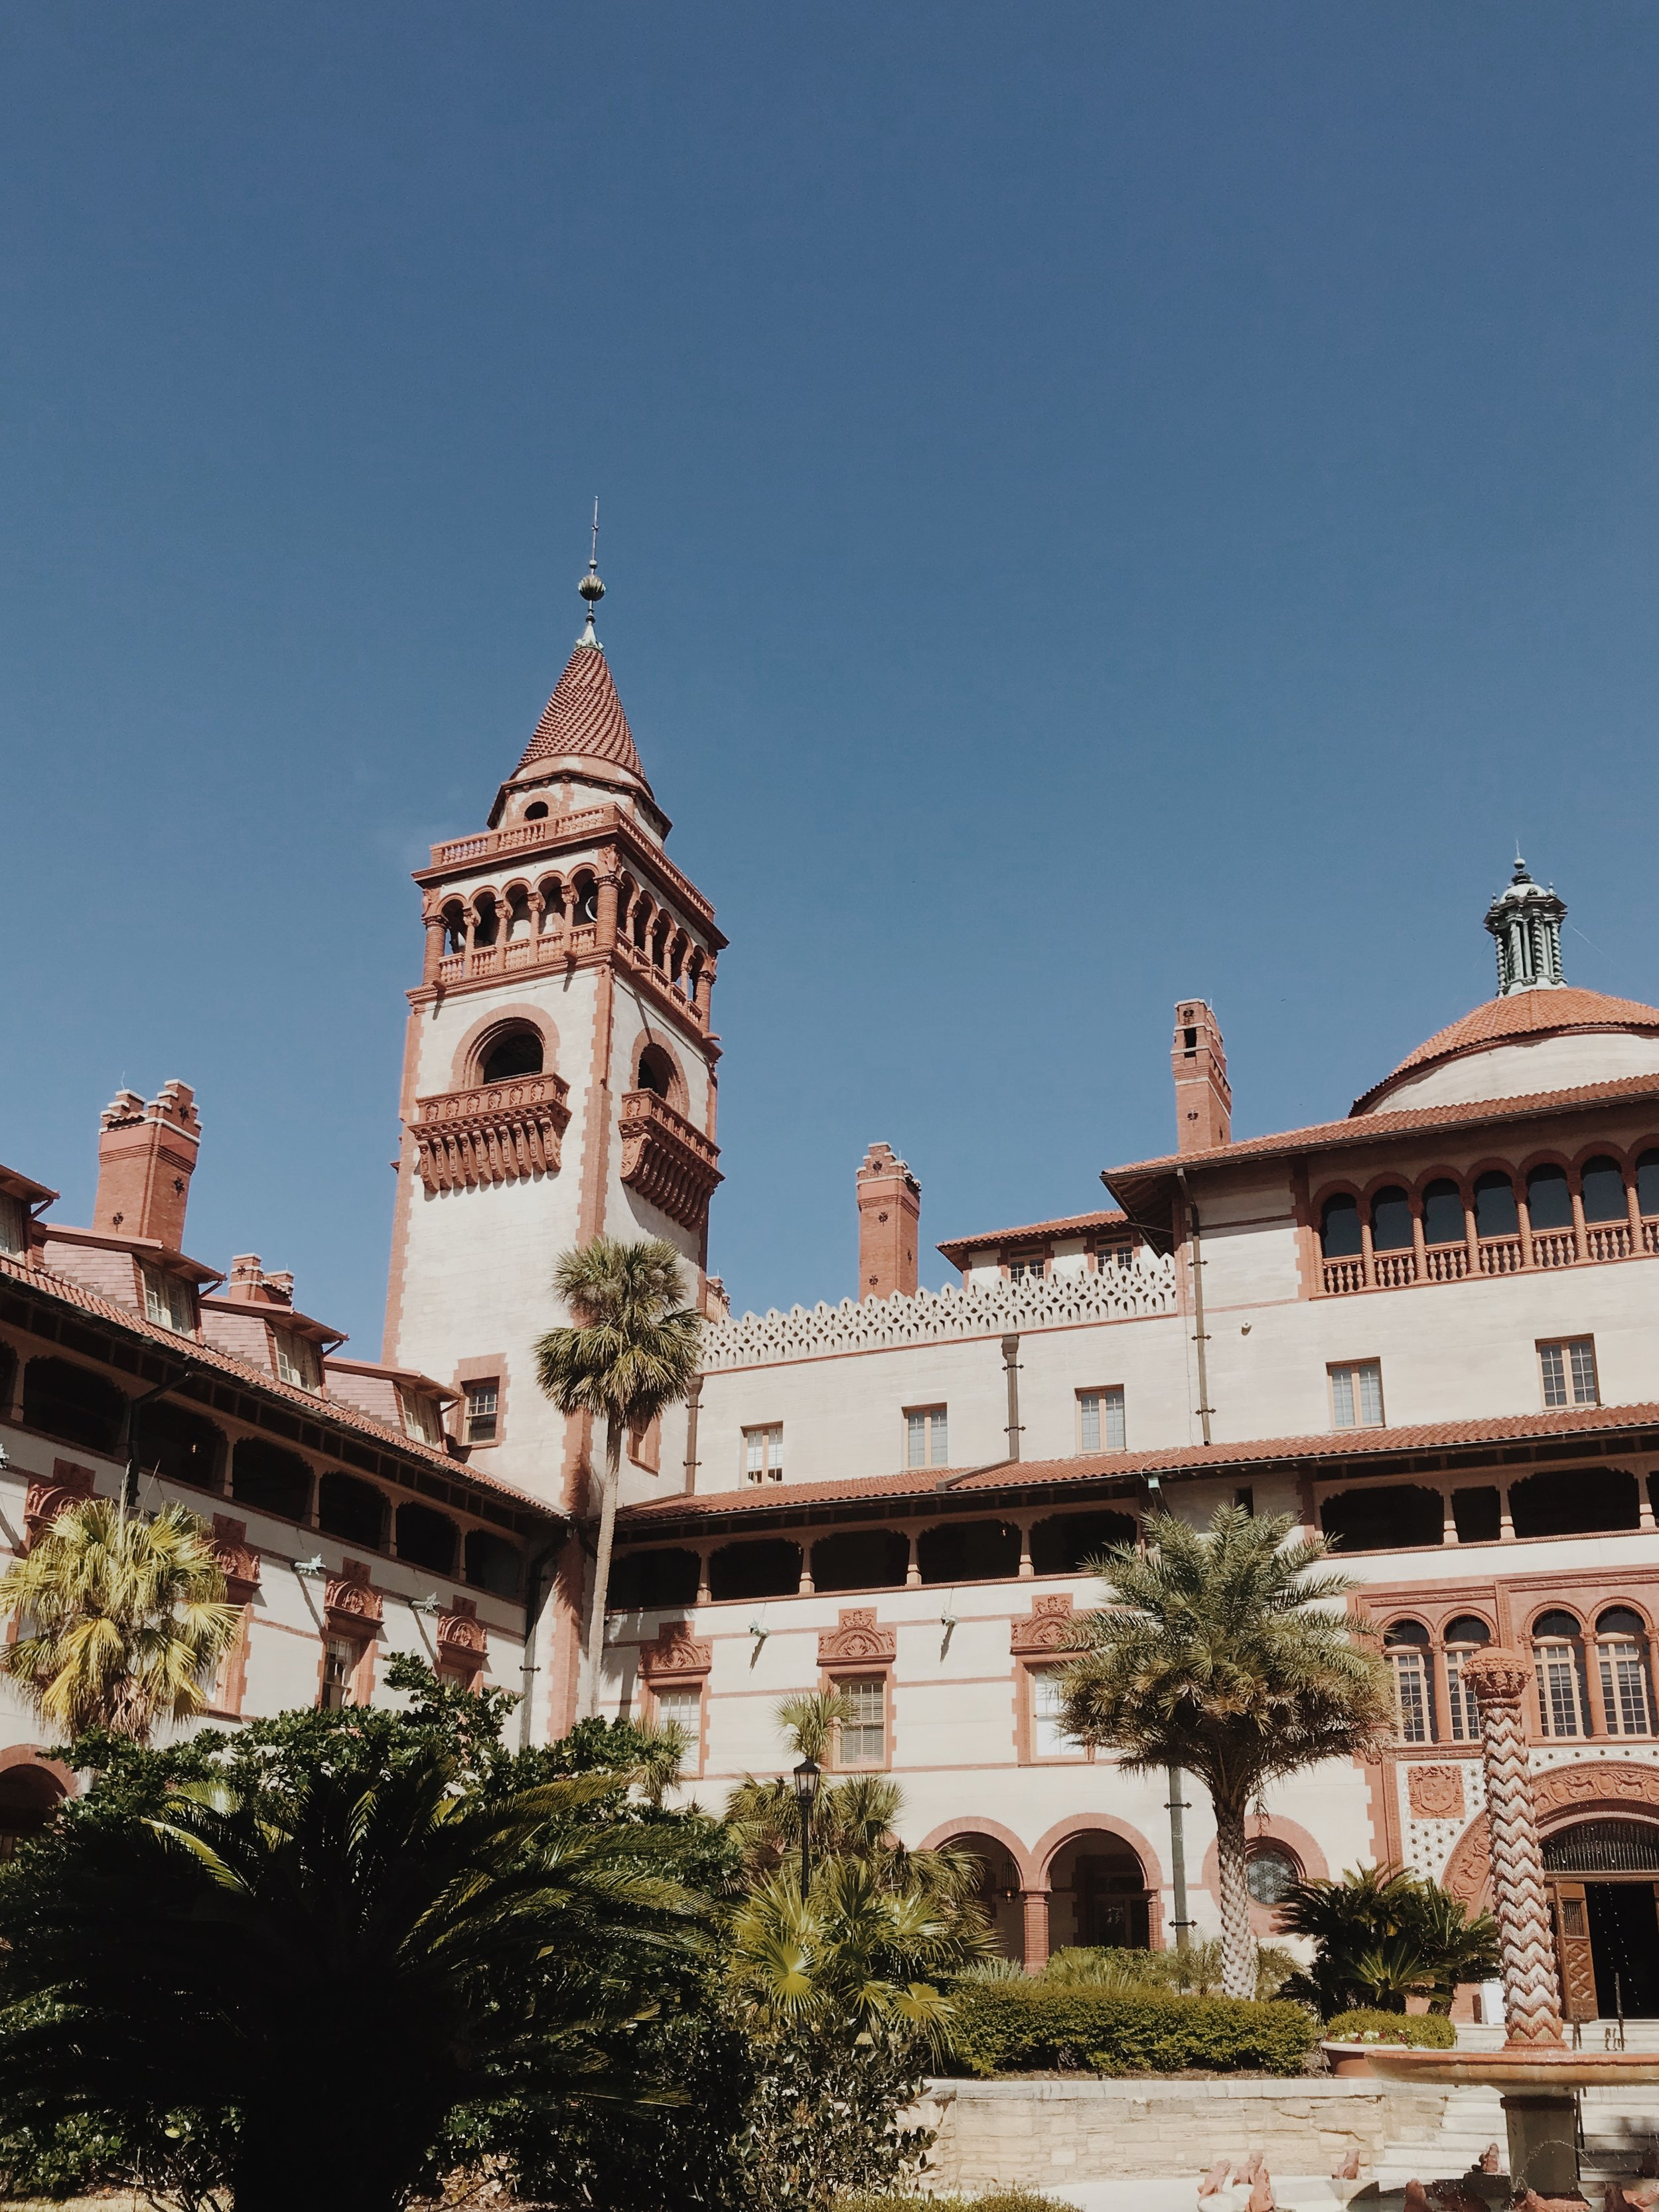 Must see: Flagler College - Flagler College has been rated one of the prettiest college campuses in the WORLD. It's safe to say, you need to stop in the main courtyard of Ponce Hall (formerly the Ponce de Leon hotel, founded by Henry Flagler) and just take in the beauty of the building.